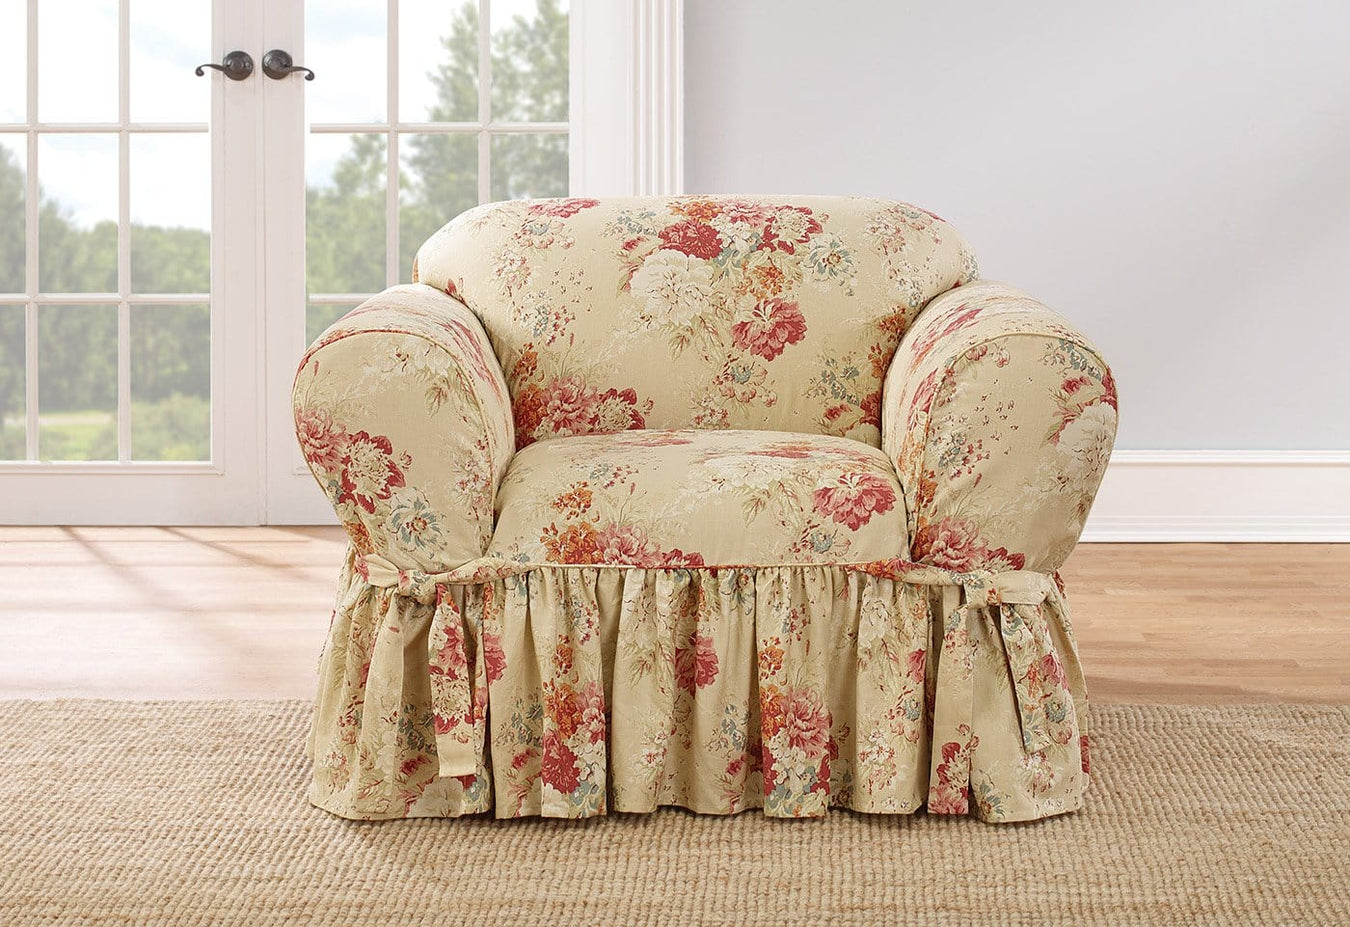 Ballad Bouquet By Waverly One Piece Chair Slipcover